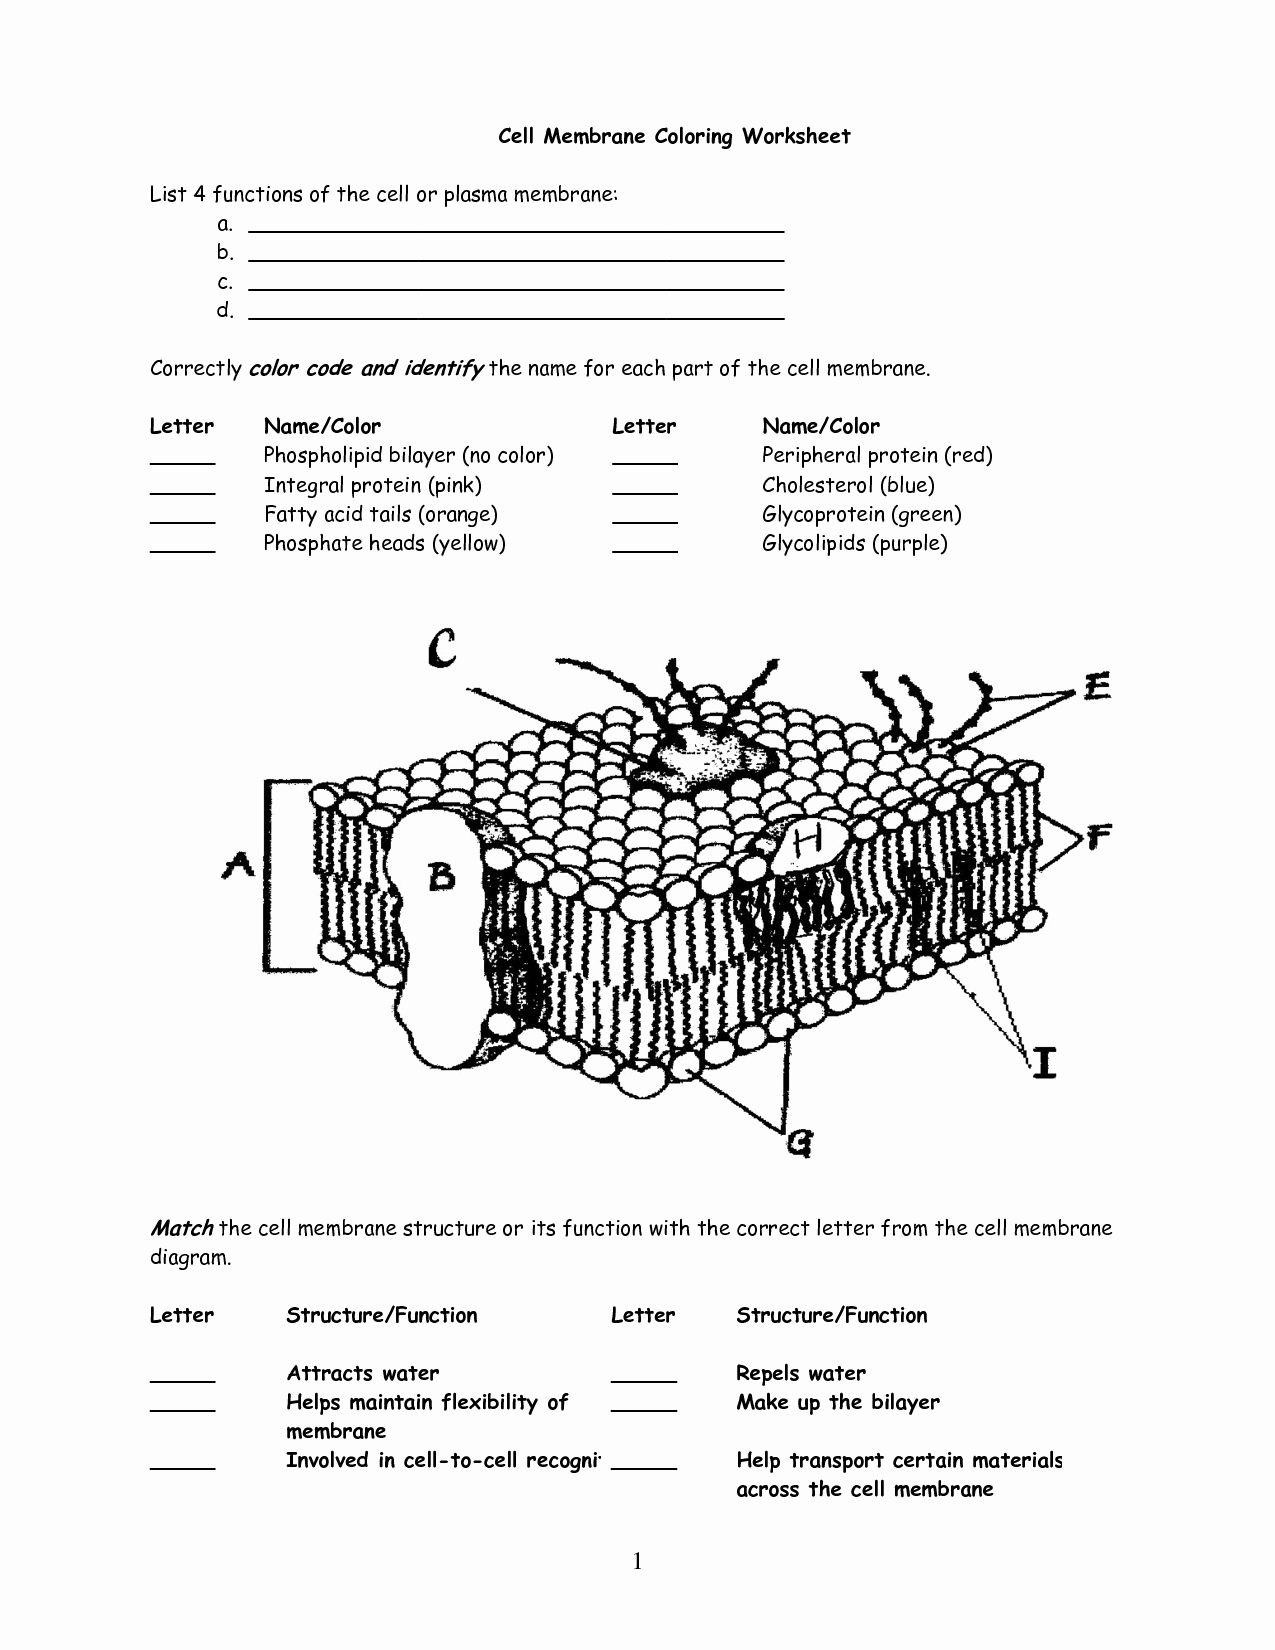 50 Cell Membrane Images Worksheet Answers In